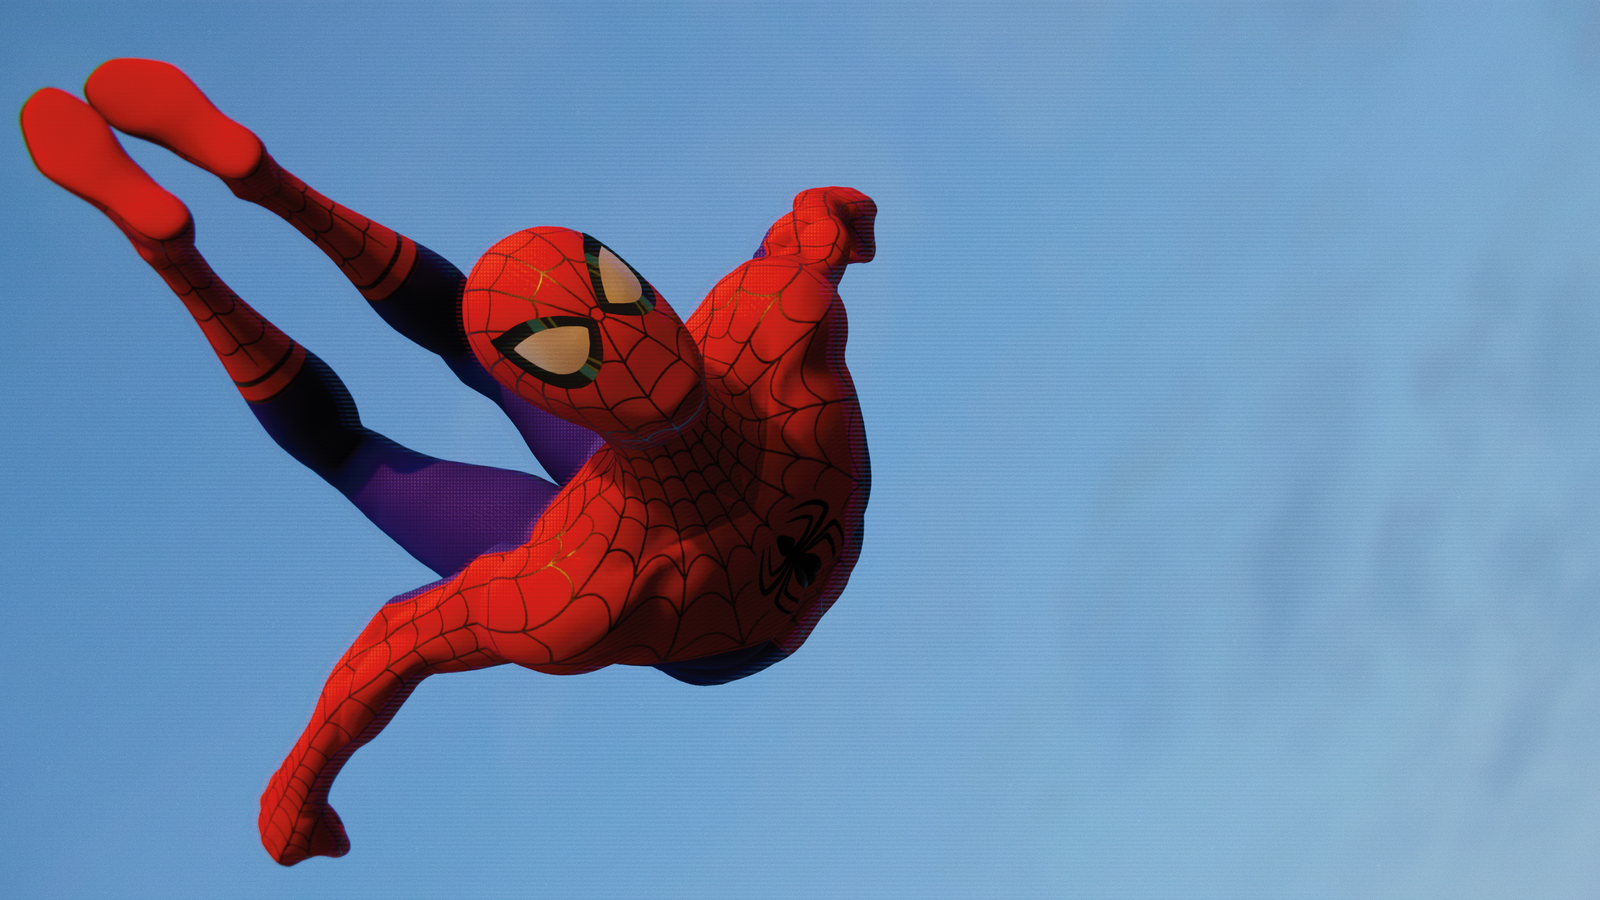 It's me. Of course I took plenty of pictures. Pictures of Spider-Man.